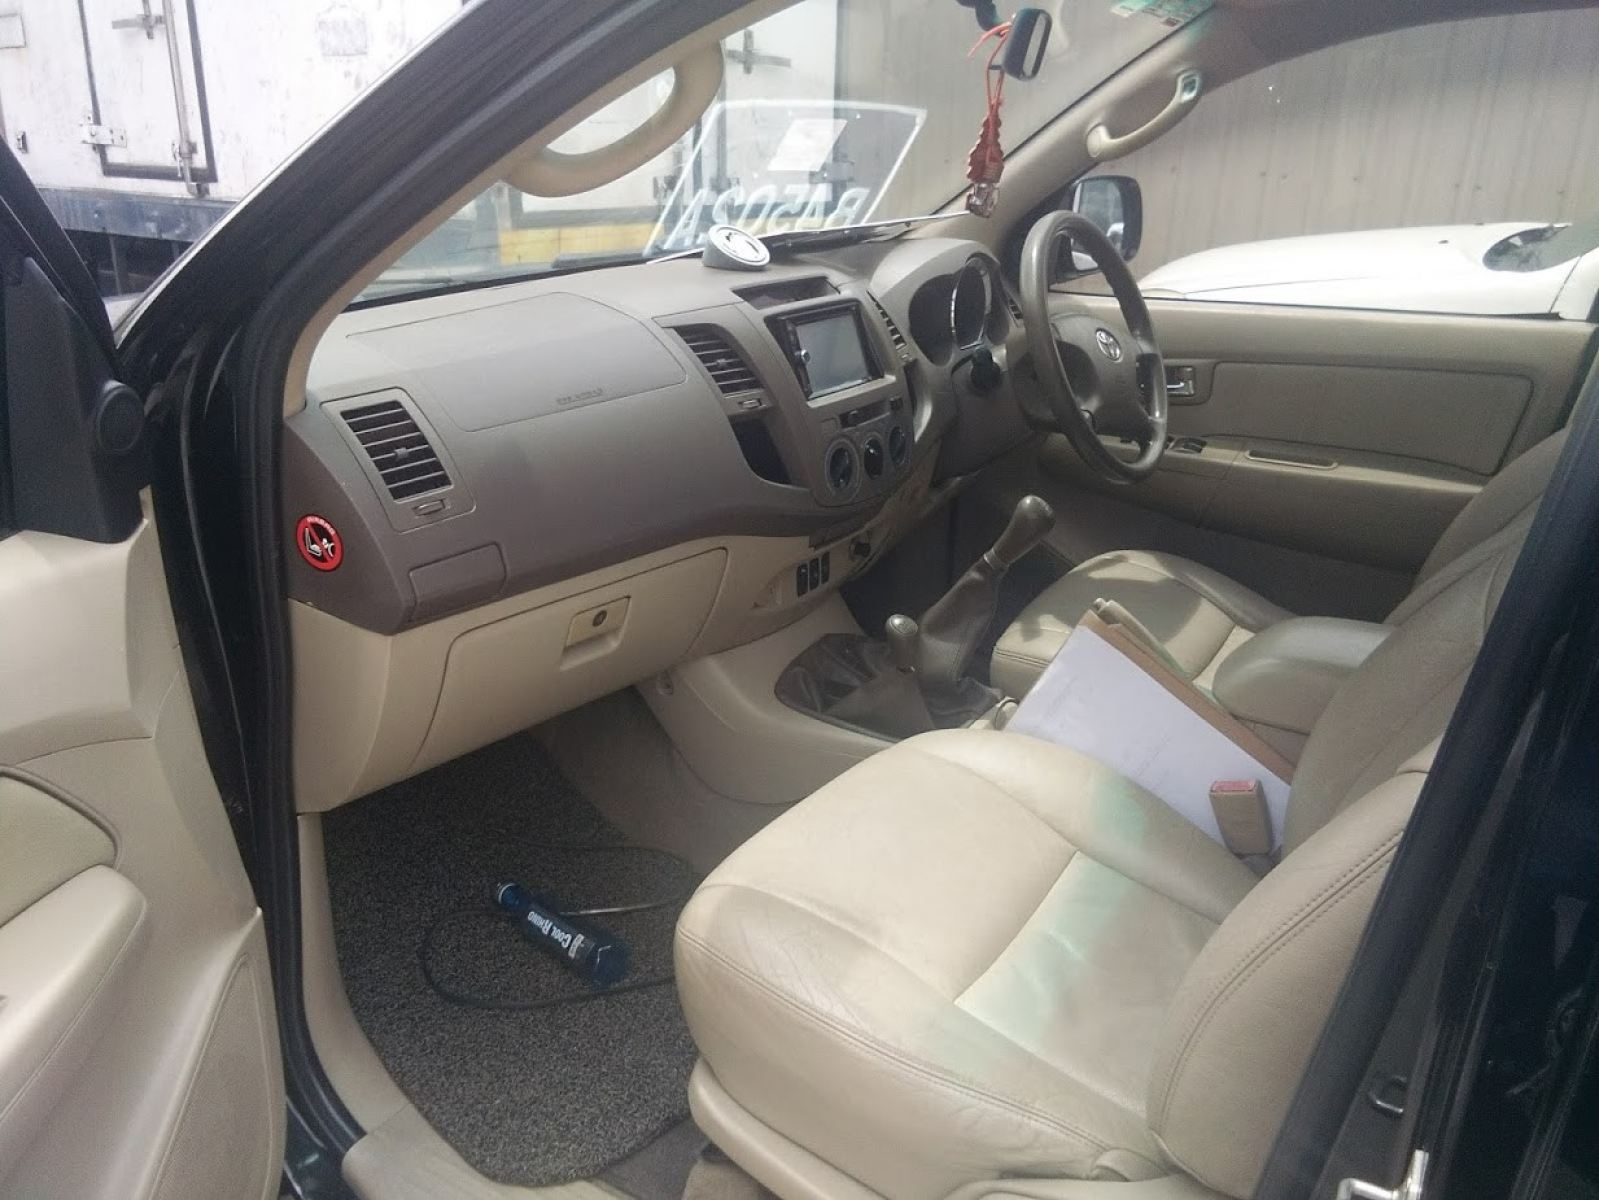 TOYOTA FORTUNA 2,5L DIESEL TURBO 06 FOR SALES USEDCAR FOR SALES USED